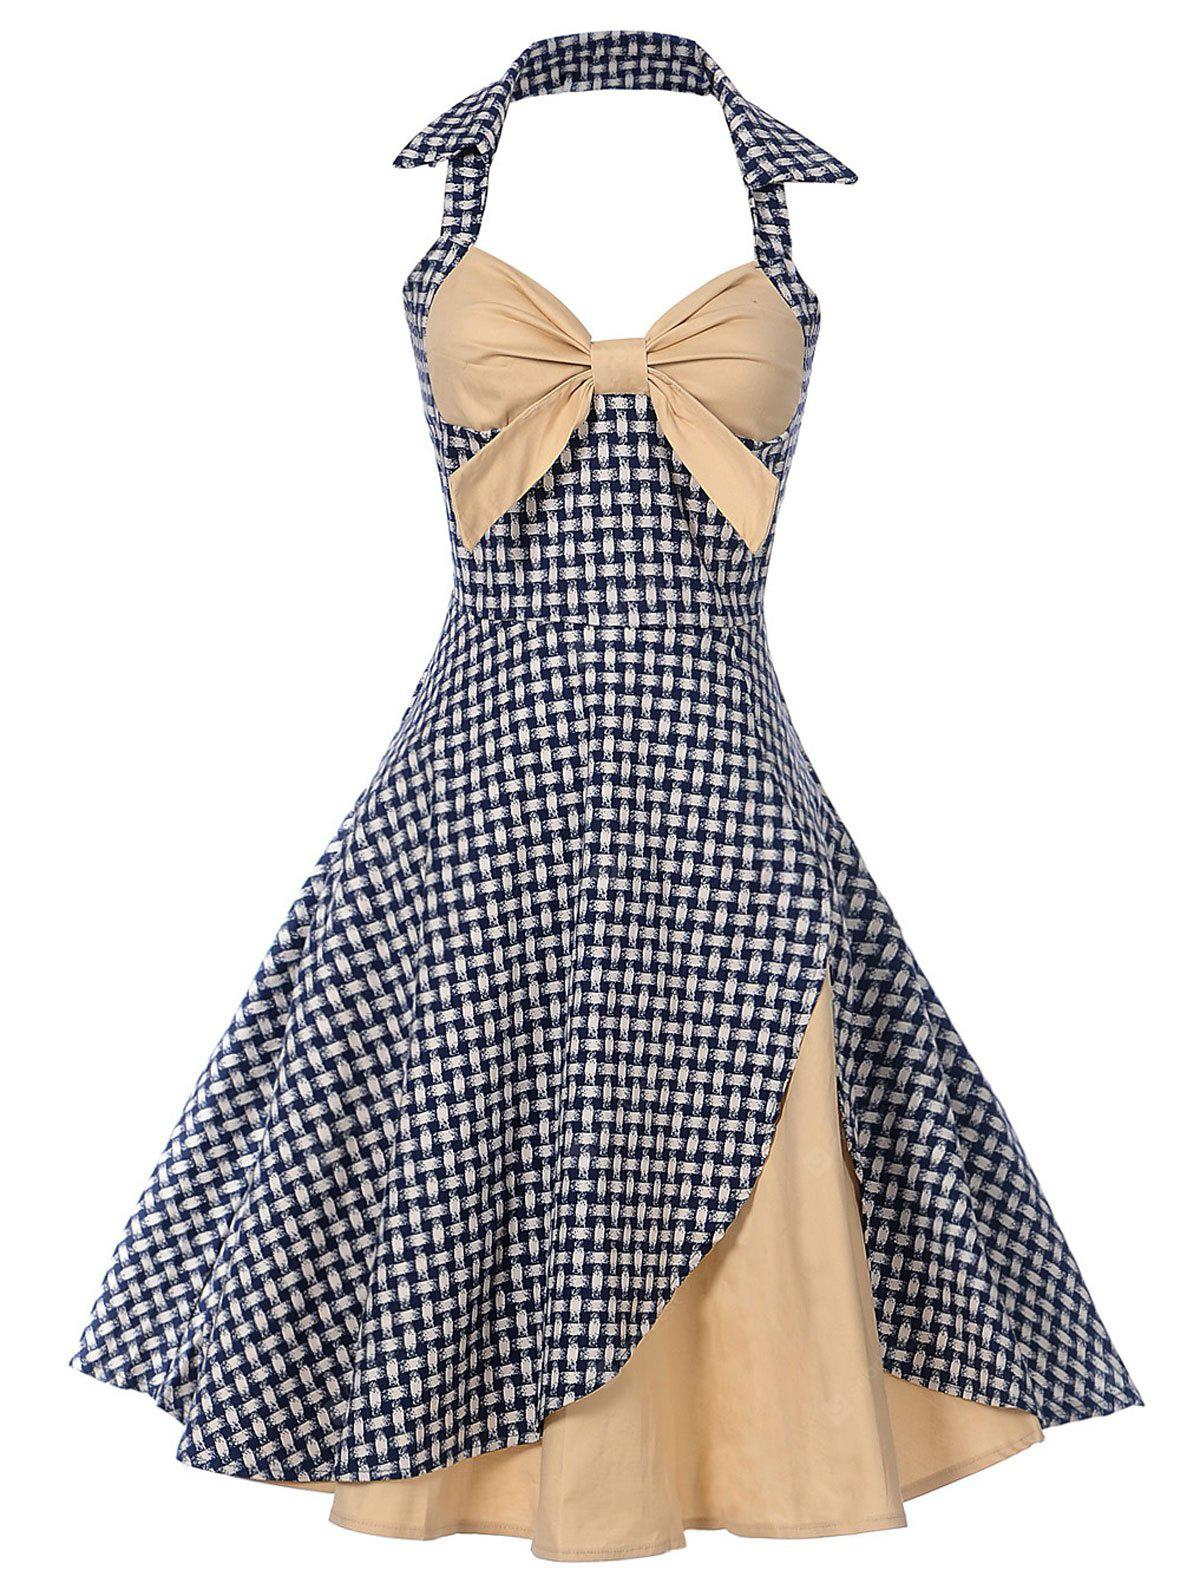 Vintage Halter Bowknot Plaid Pin Up Dress